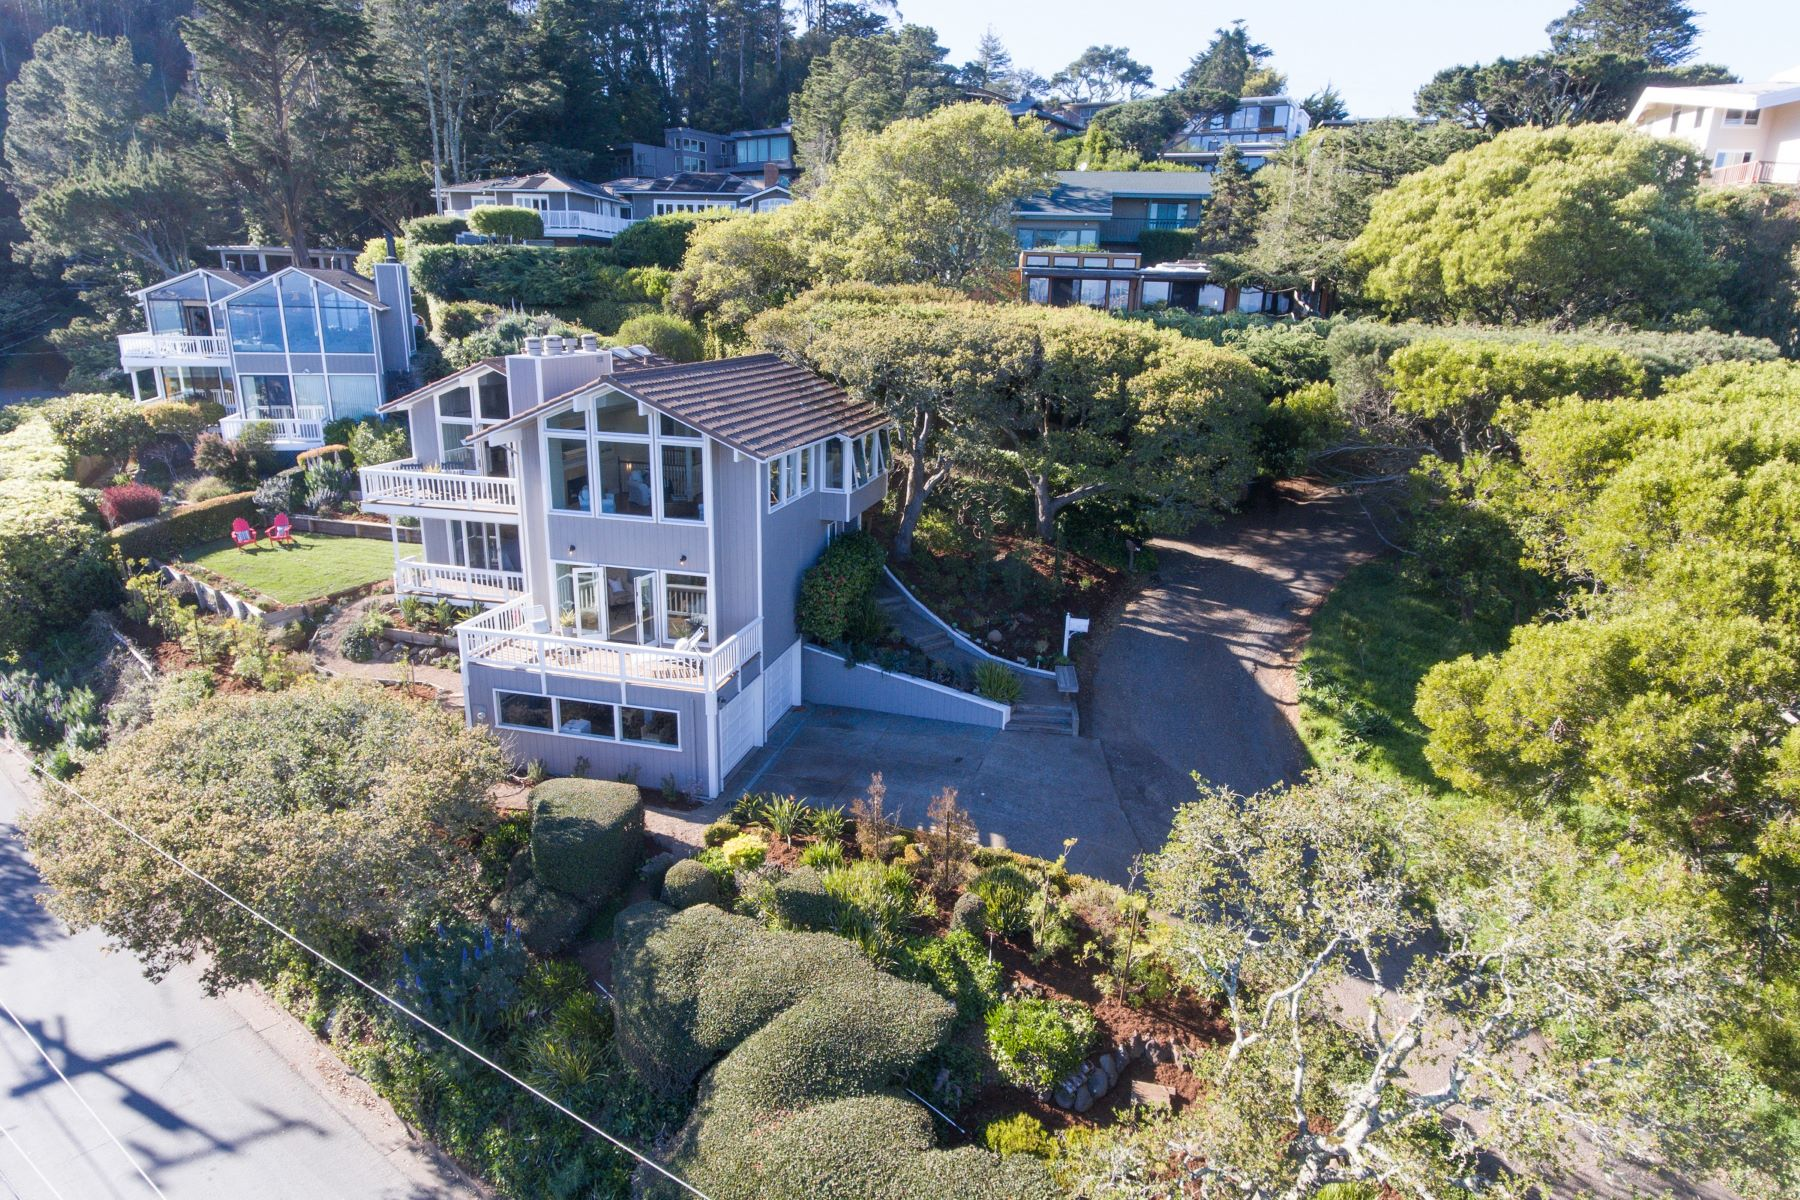 Single Family Home for Sale at Entertaining Sausalito Views 114 Prospect Avenue Sausalito, California, 94965 United States